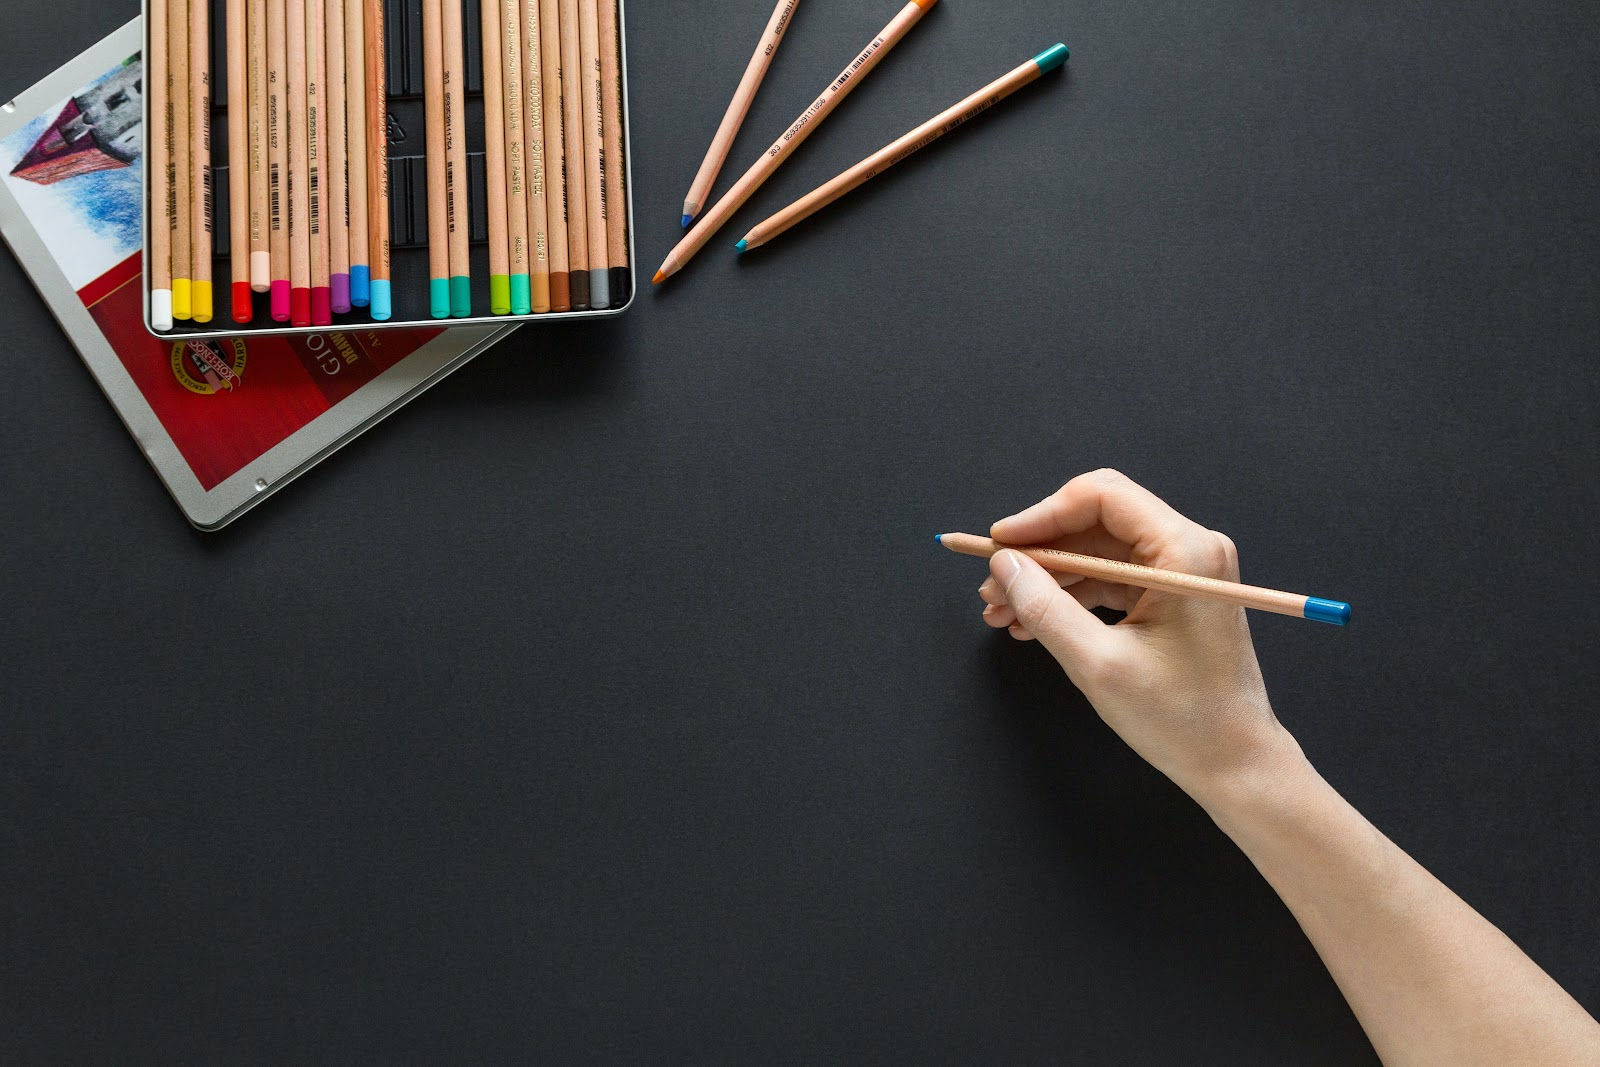 Designer hand holding colored pencil about to design draw